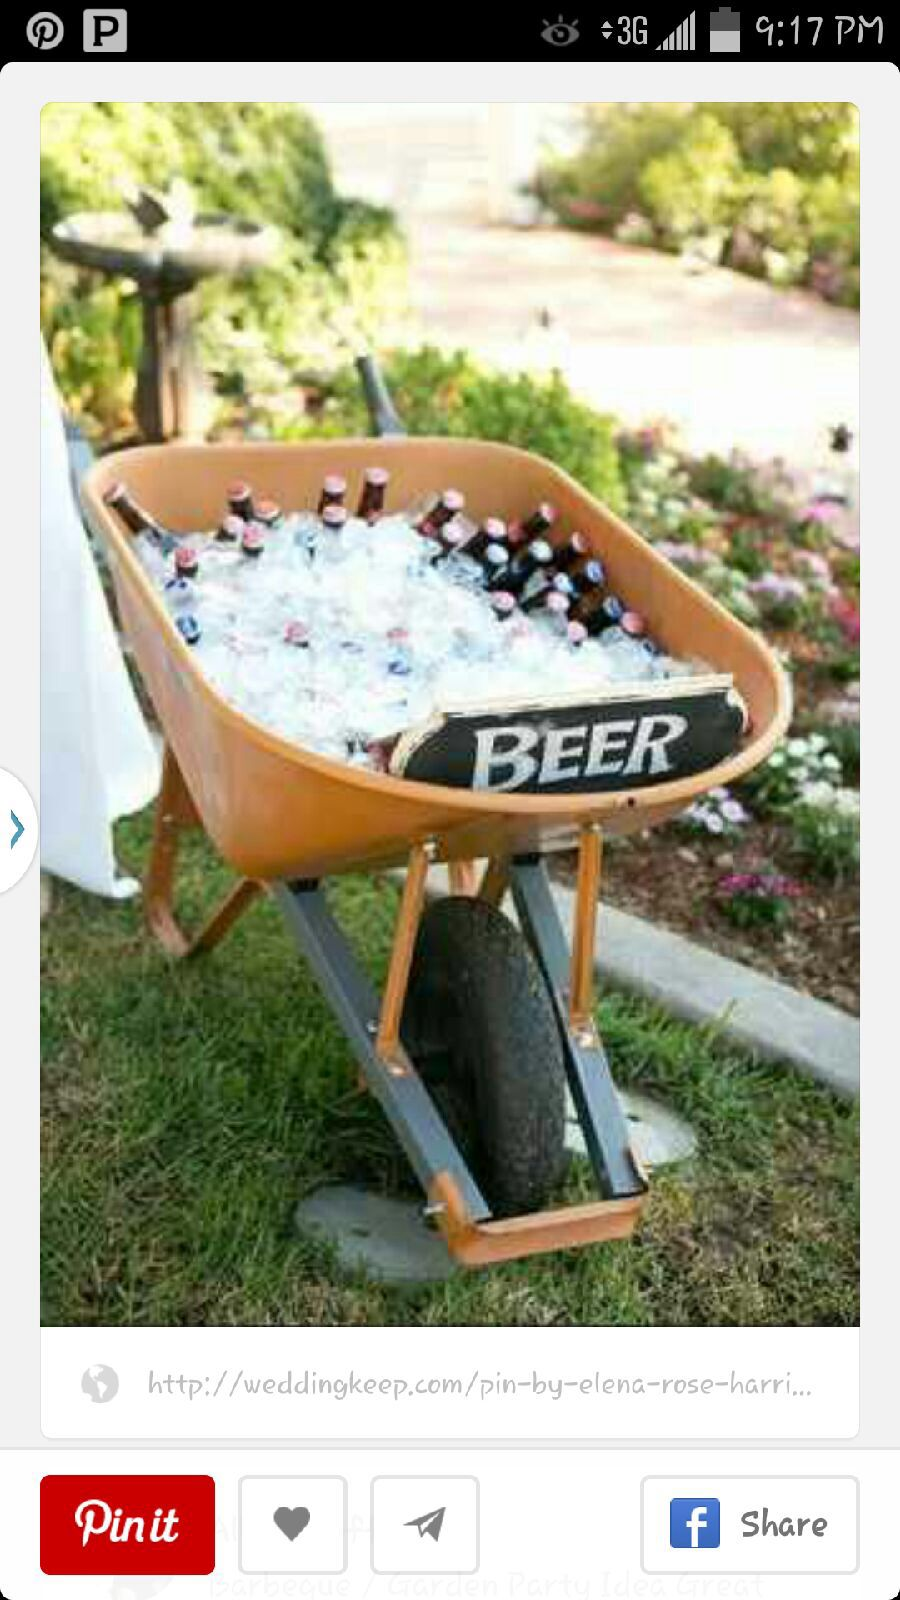 pin by palmer love on engagement party ideas pinterest beer